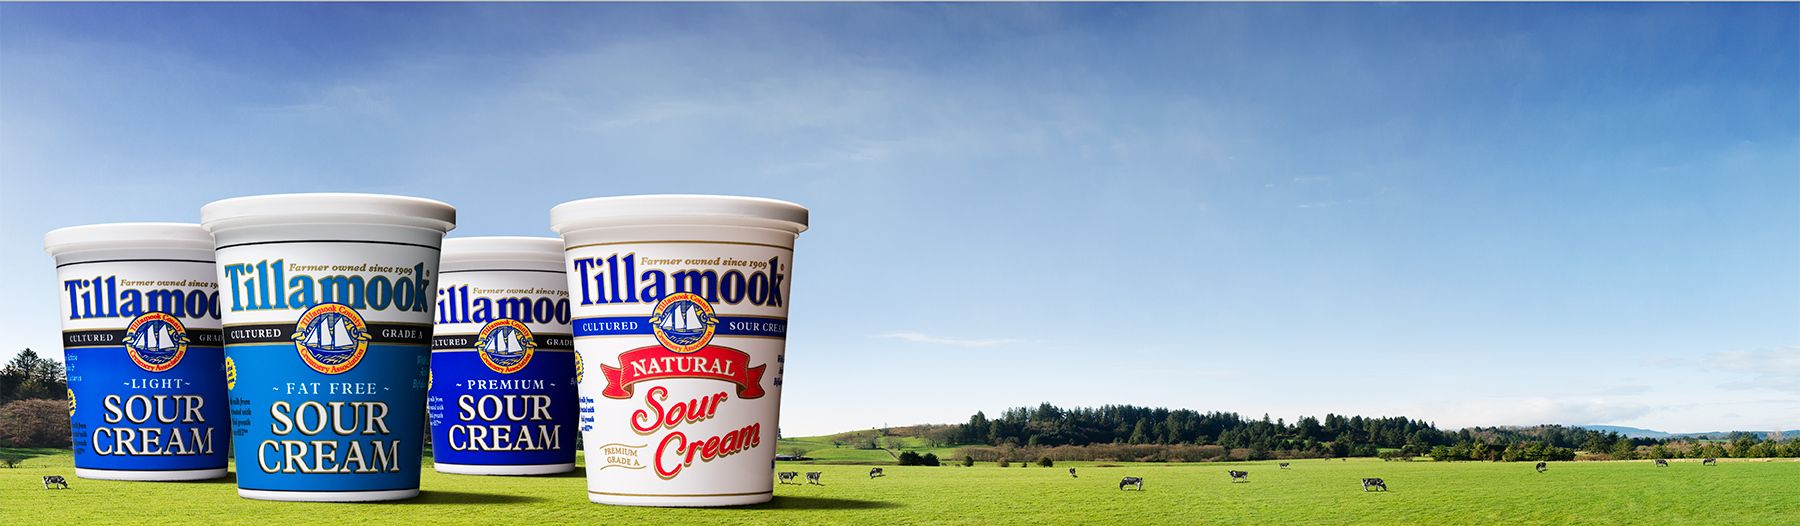 24_1r10_160_sourcream_group_ad_04_v1.jpg